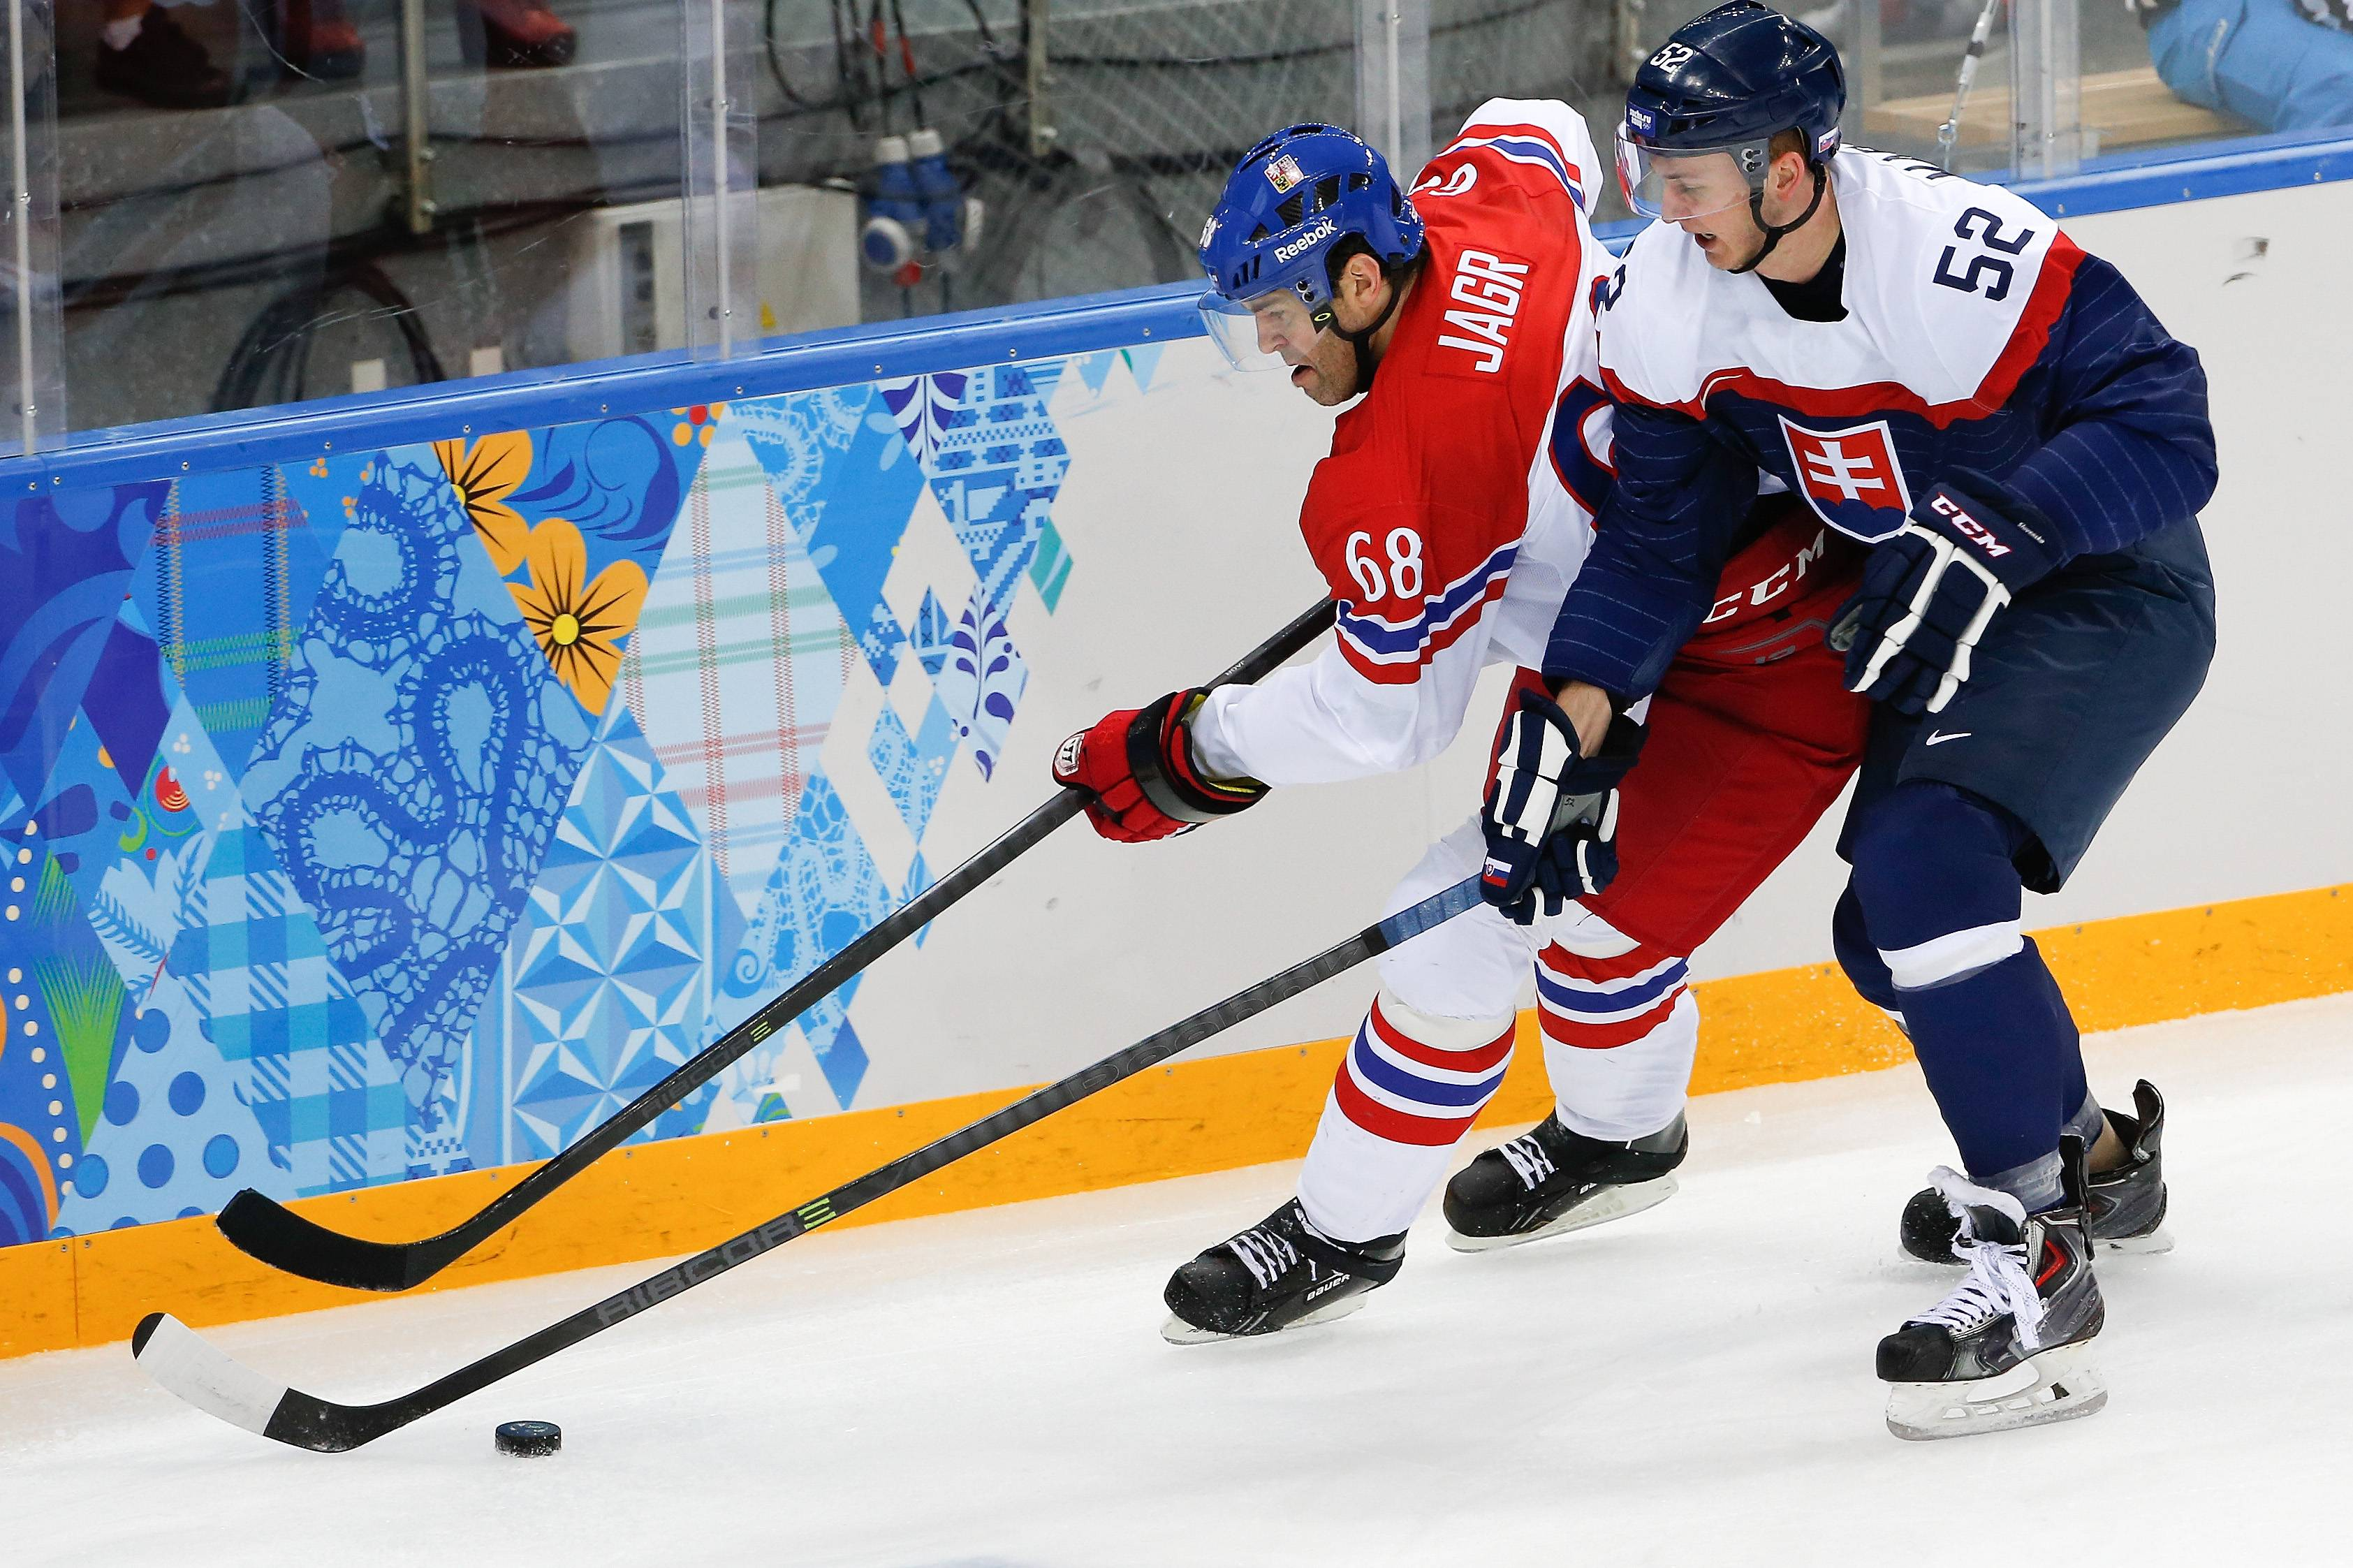 Czech Republic forward Jaromir Jagr and Slovakia defenseman Martin Marincin chase a loose puck during the first period.